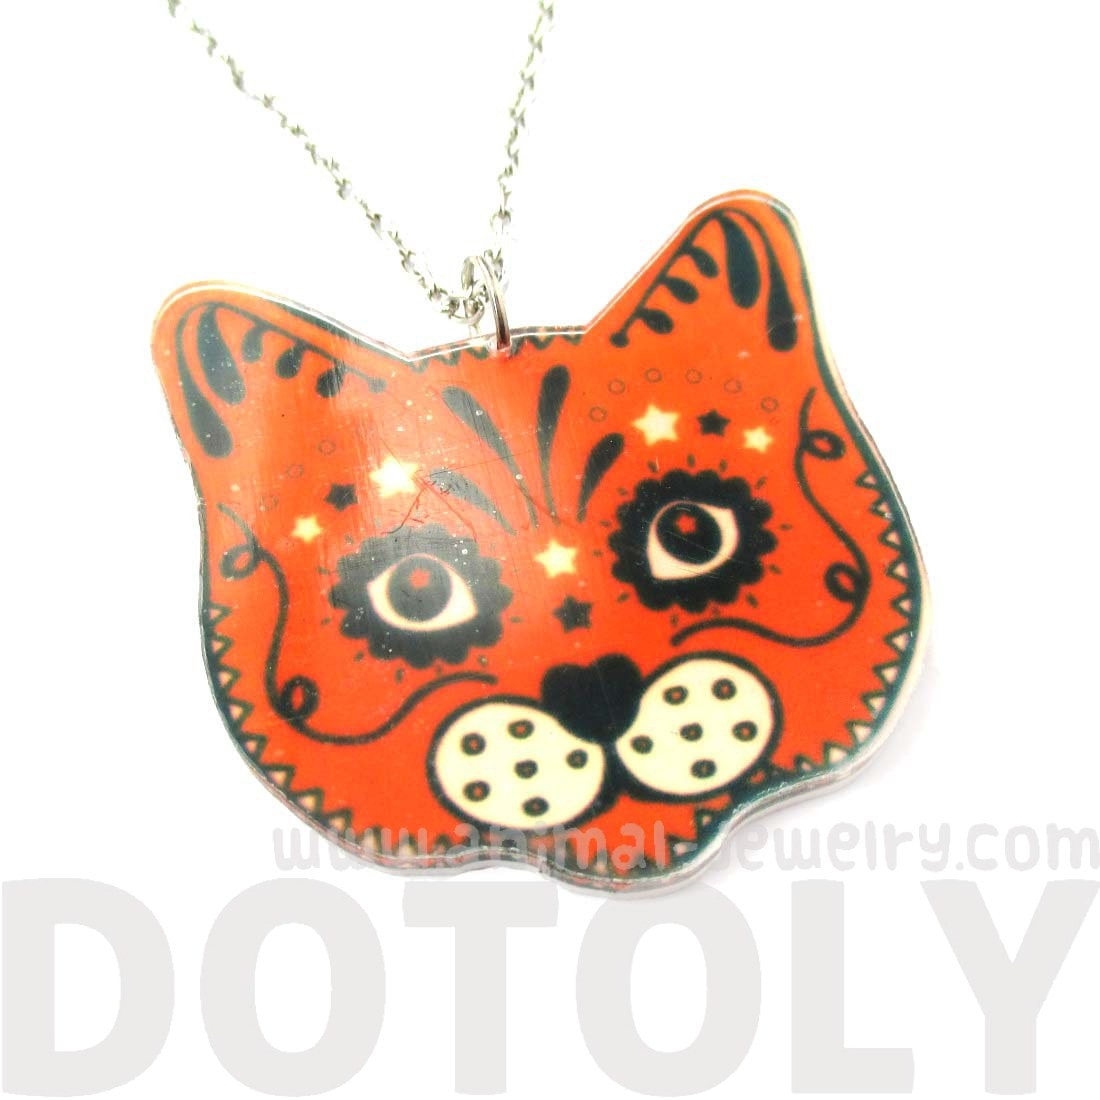 Orange Kitty Cat Face Shaped Decorative Acrylic Pendant Necklace